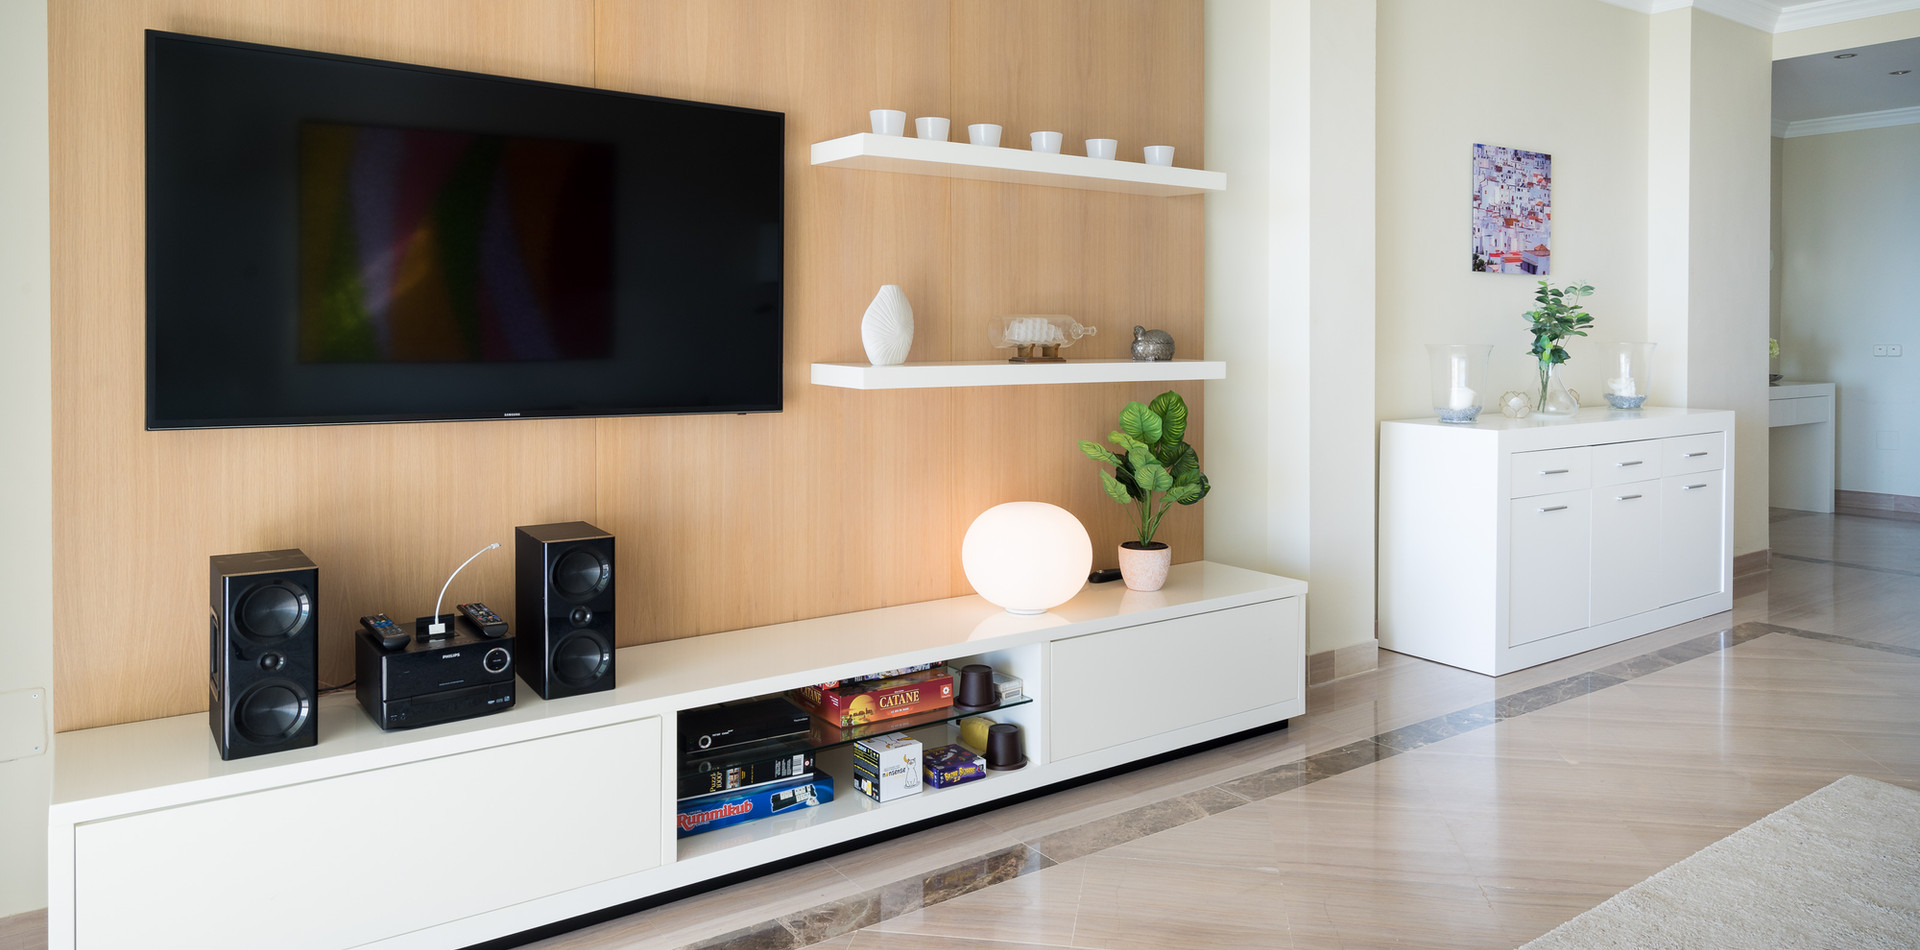 Samsung smart TV con Netflix y internet fibra optica lo mas rapido de Movistart